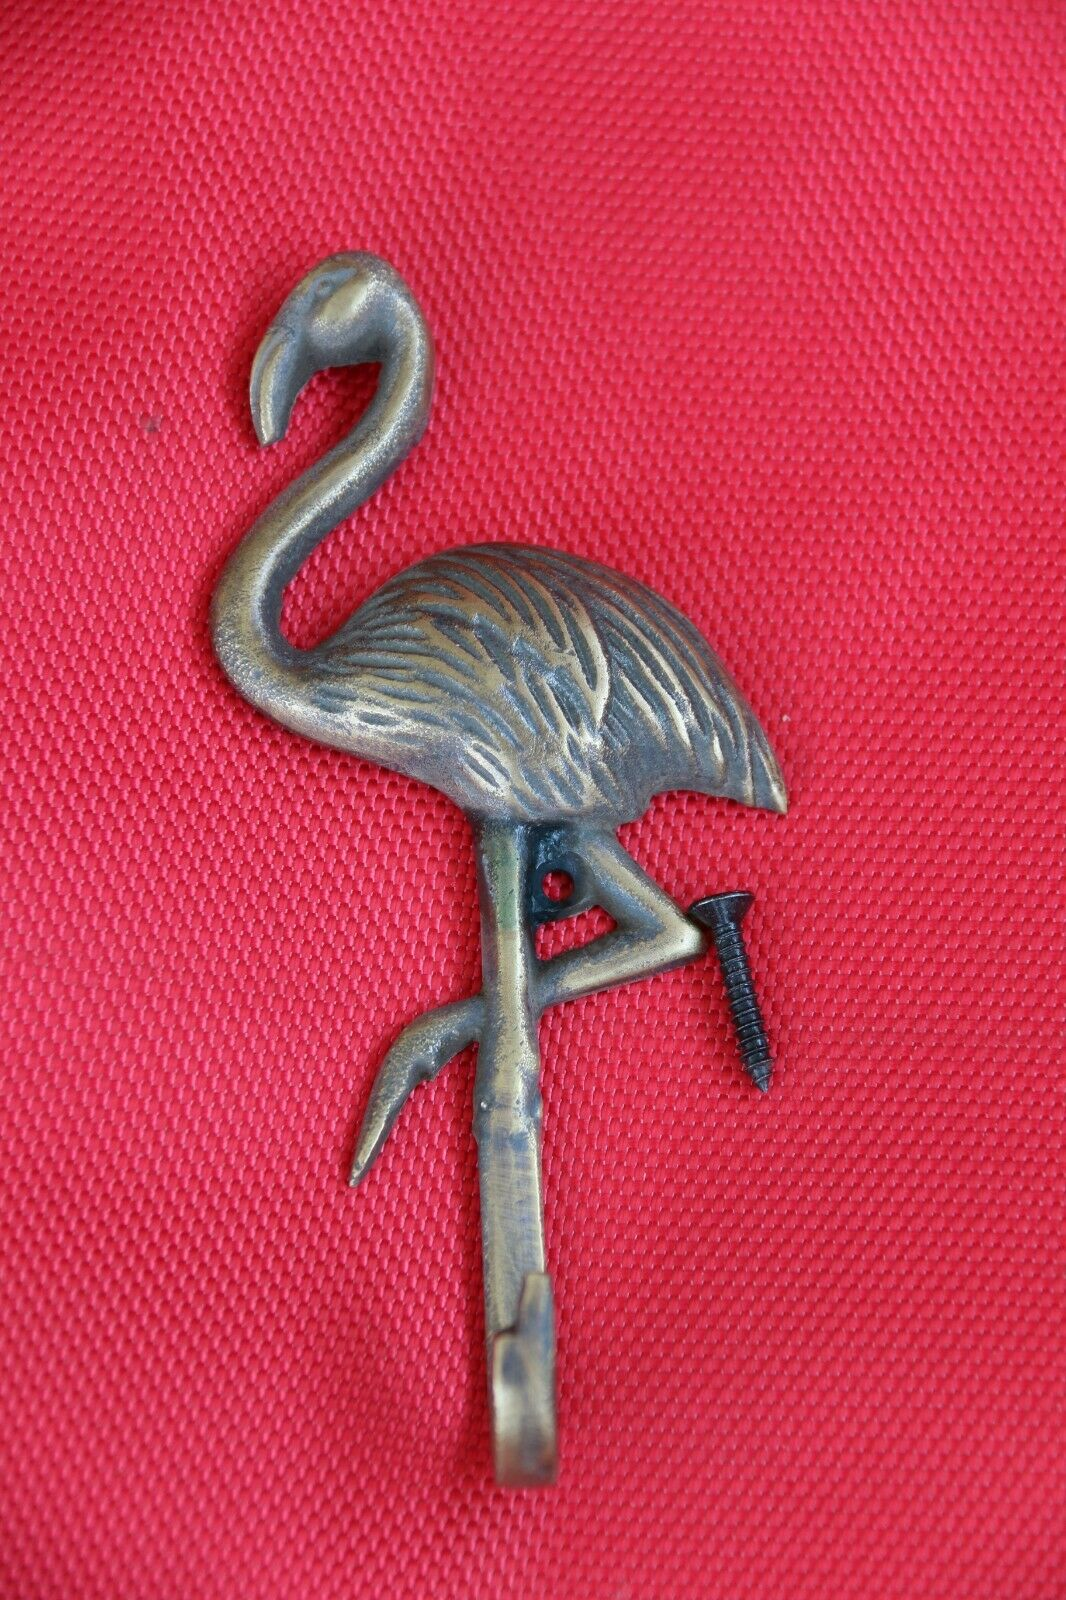 New BRASS Flamingo Hook - Decorative Wall Hook - Furniture Fittings & Acces.